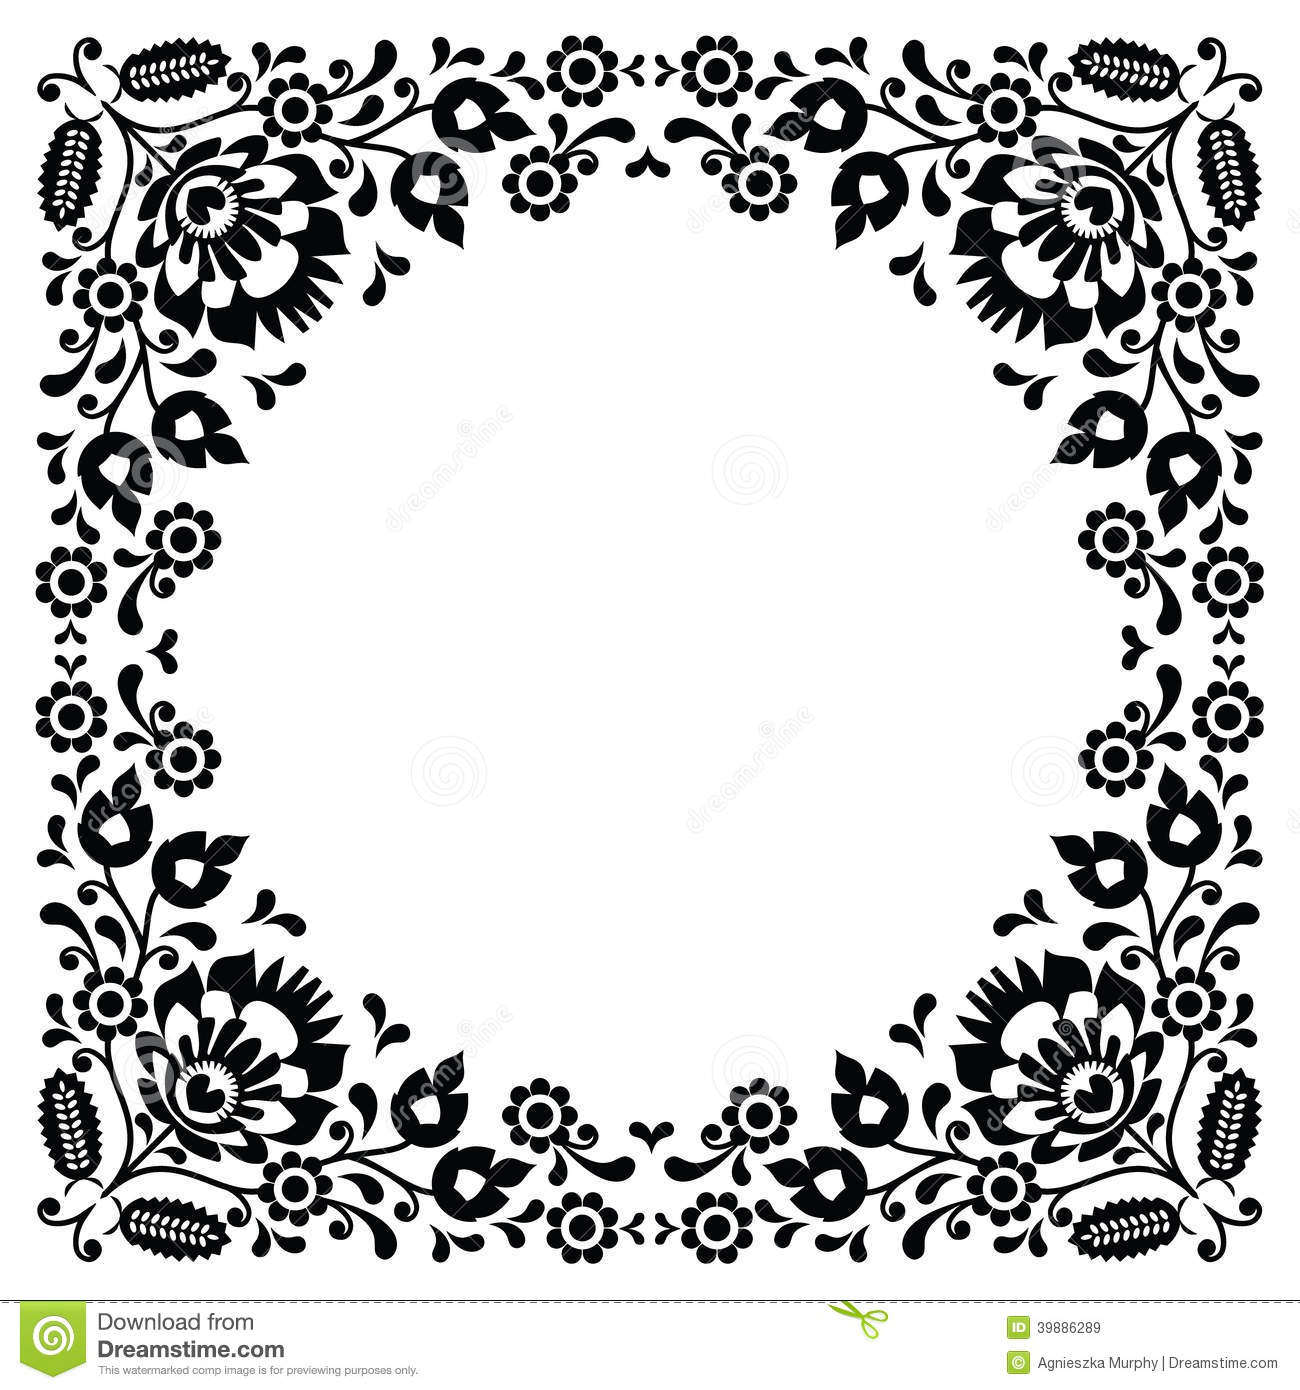 Polish Floral Folk Black Embroidery Frame Pattern